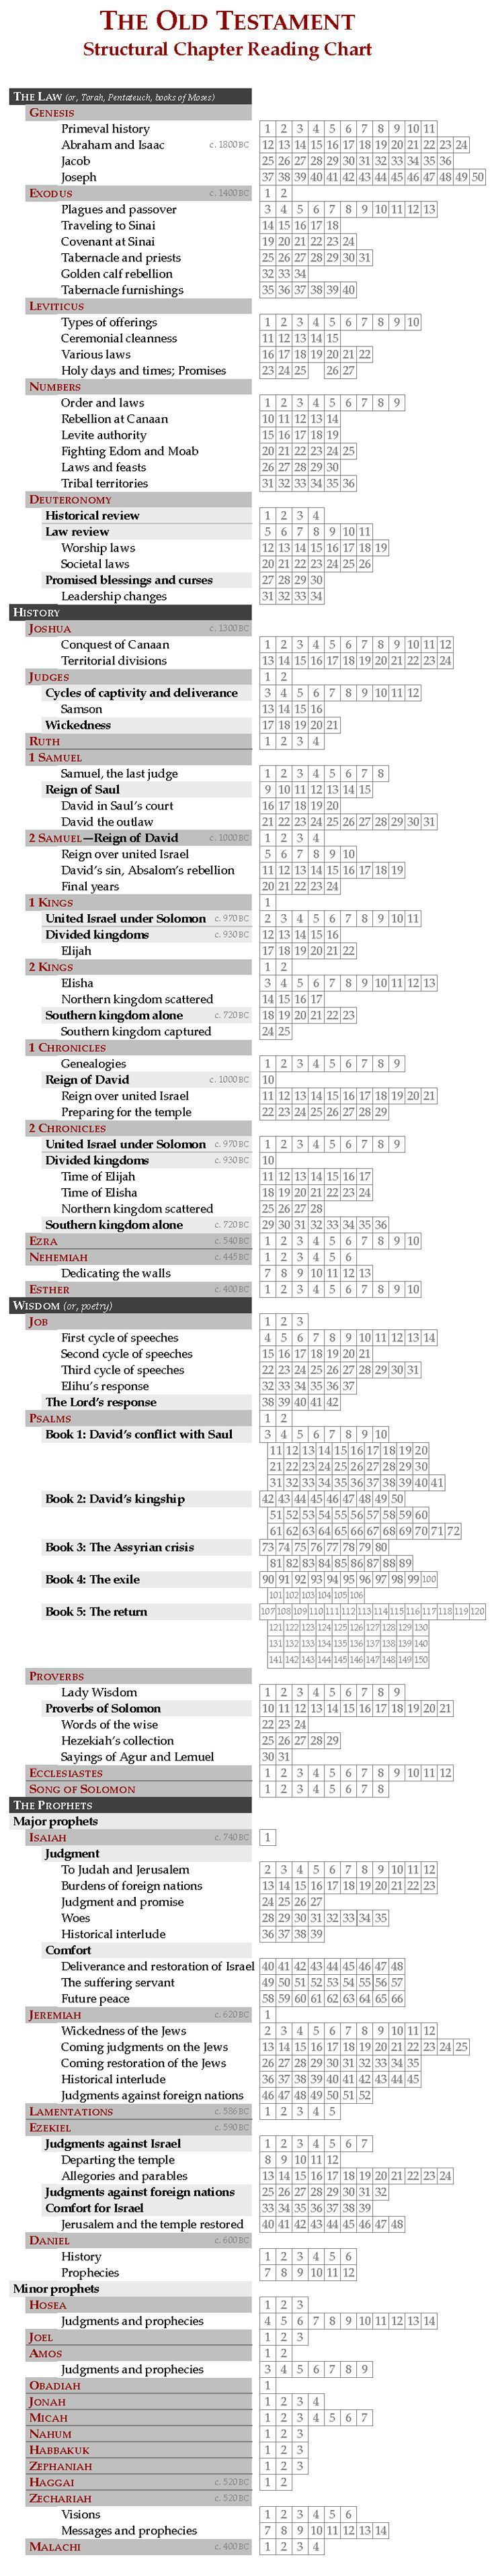 free printable charts and checklists. Free Printable Structural Chapter Reading Chart: The Old Testament. This Is A Checklist That Helps You Track Your Progress, While A\u2026 Charts And Checklists